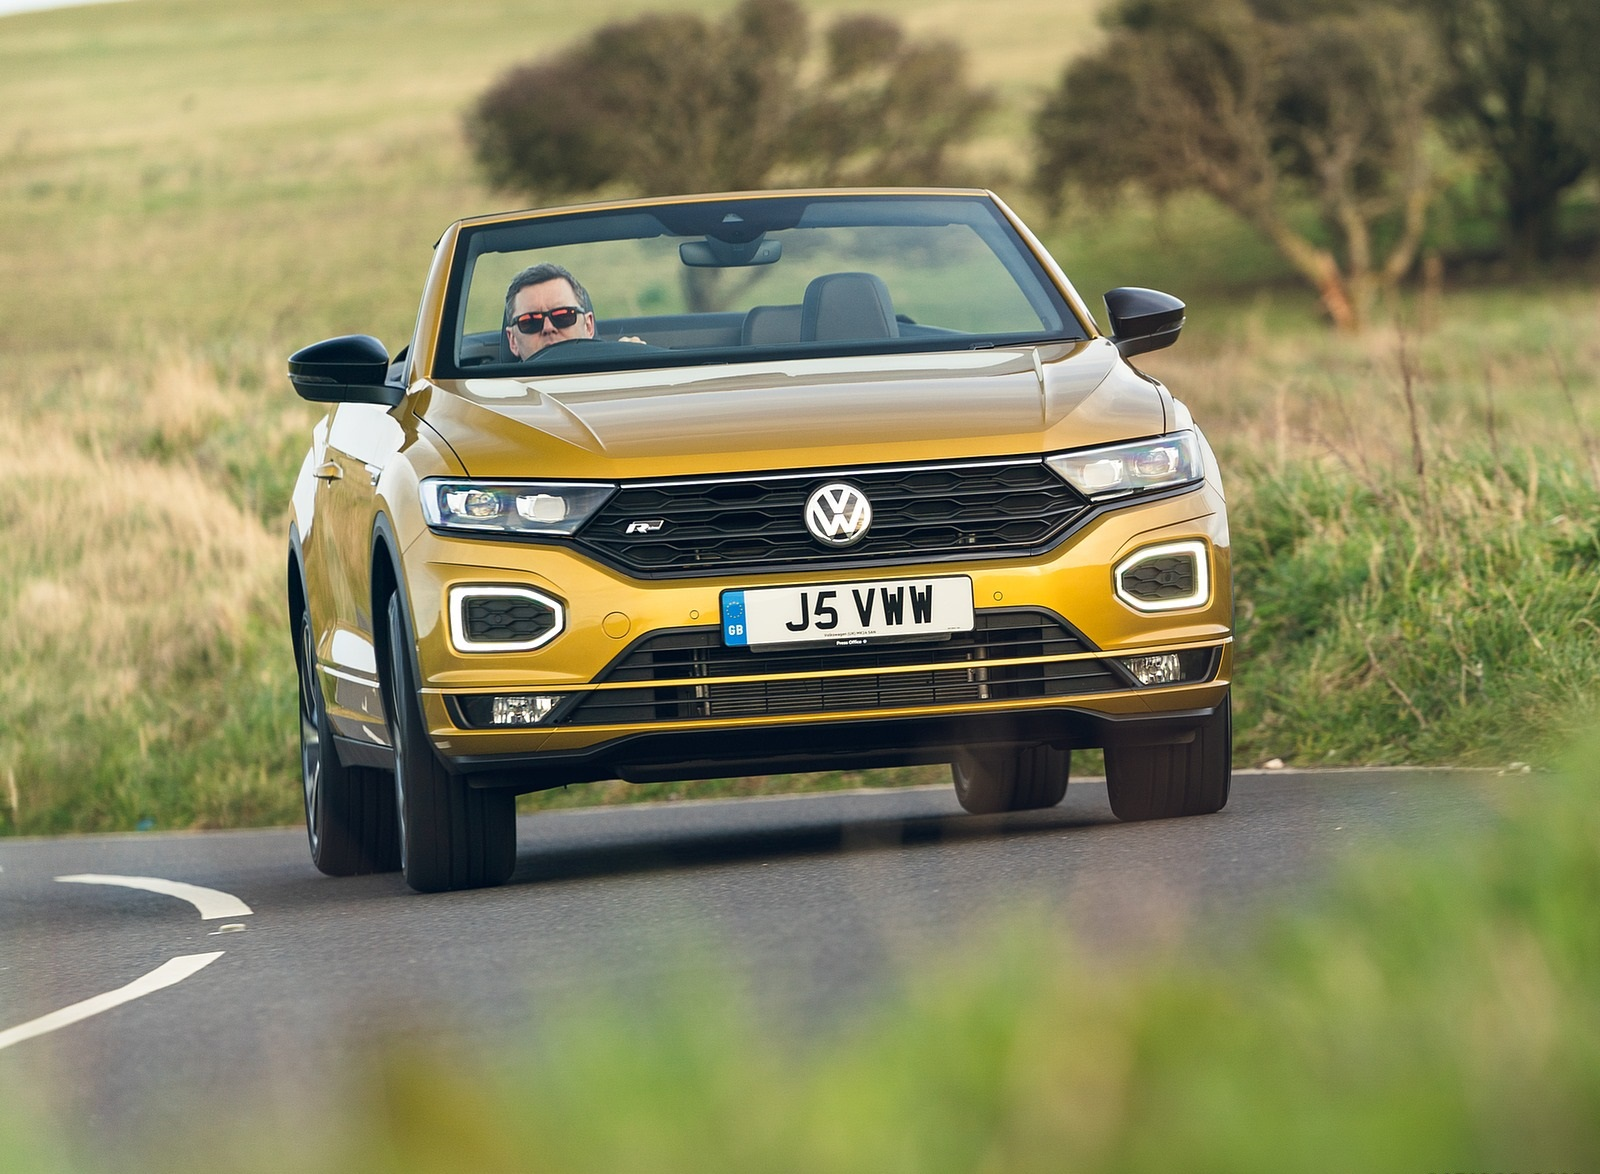 2020 Volkswagen T-Roc R-Line Cabriolet (UK-Spec) Front Wallpapers (6)